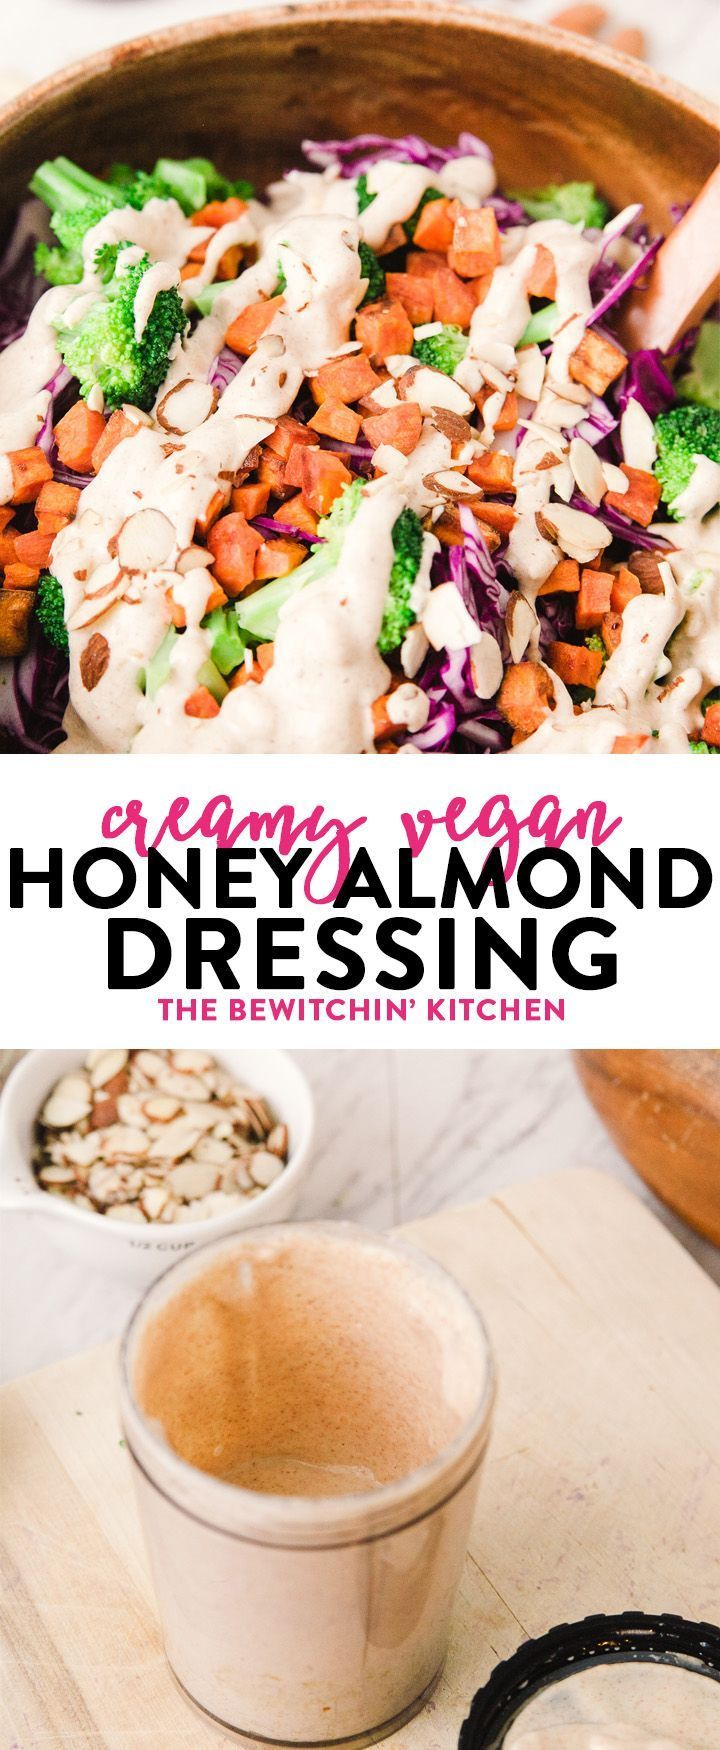 This creamy vegan almond dressing is easy to make and goes well with winter bowl recipes. Homemade salad dressings not just healthy, but simple to make! This recipe follows the guidelines of the paleo diet, 21 Day Fix and other Beachbody programs and if y